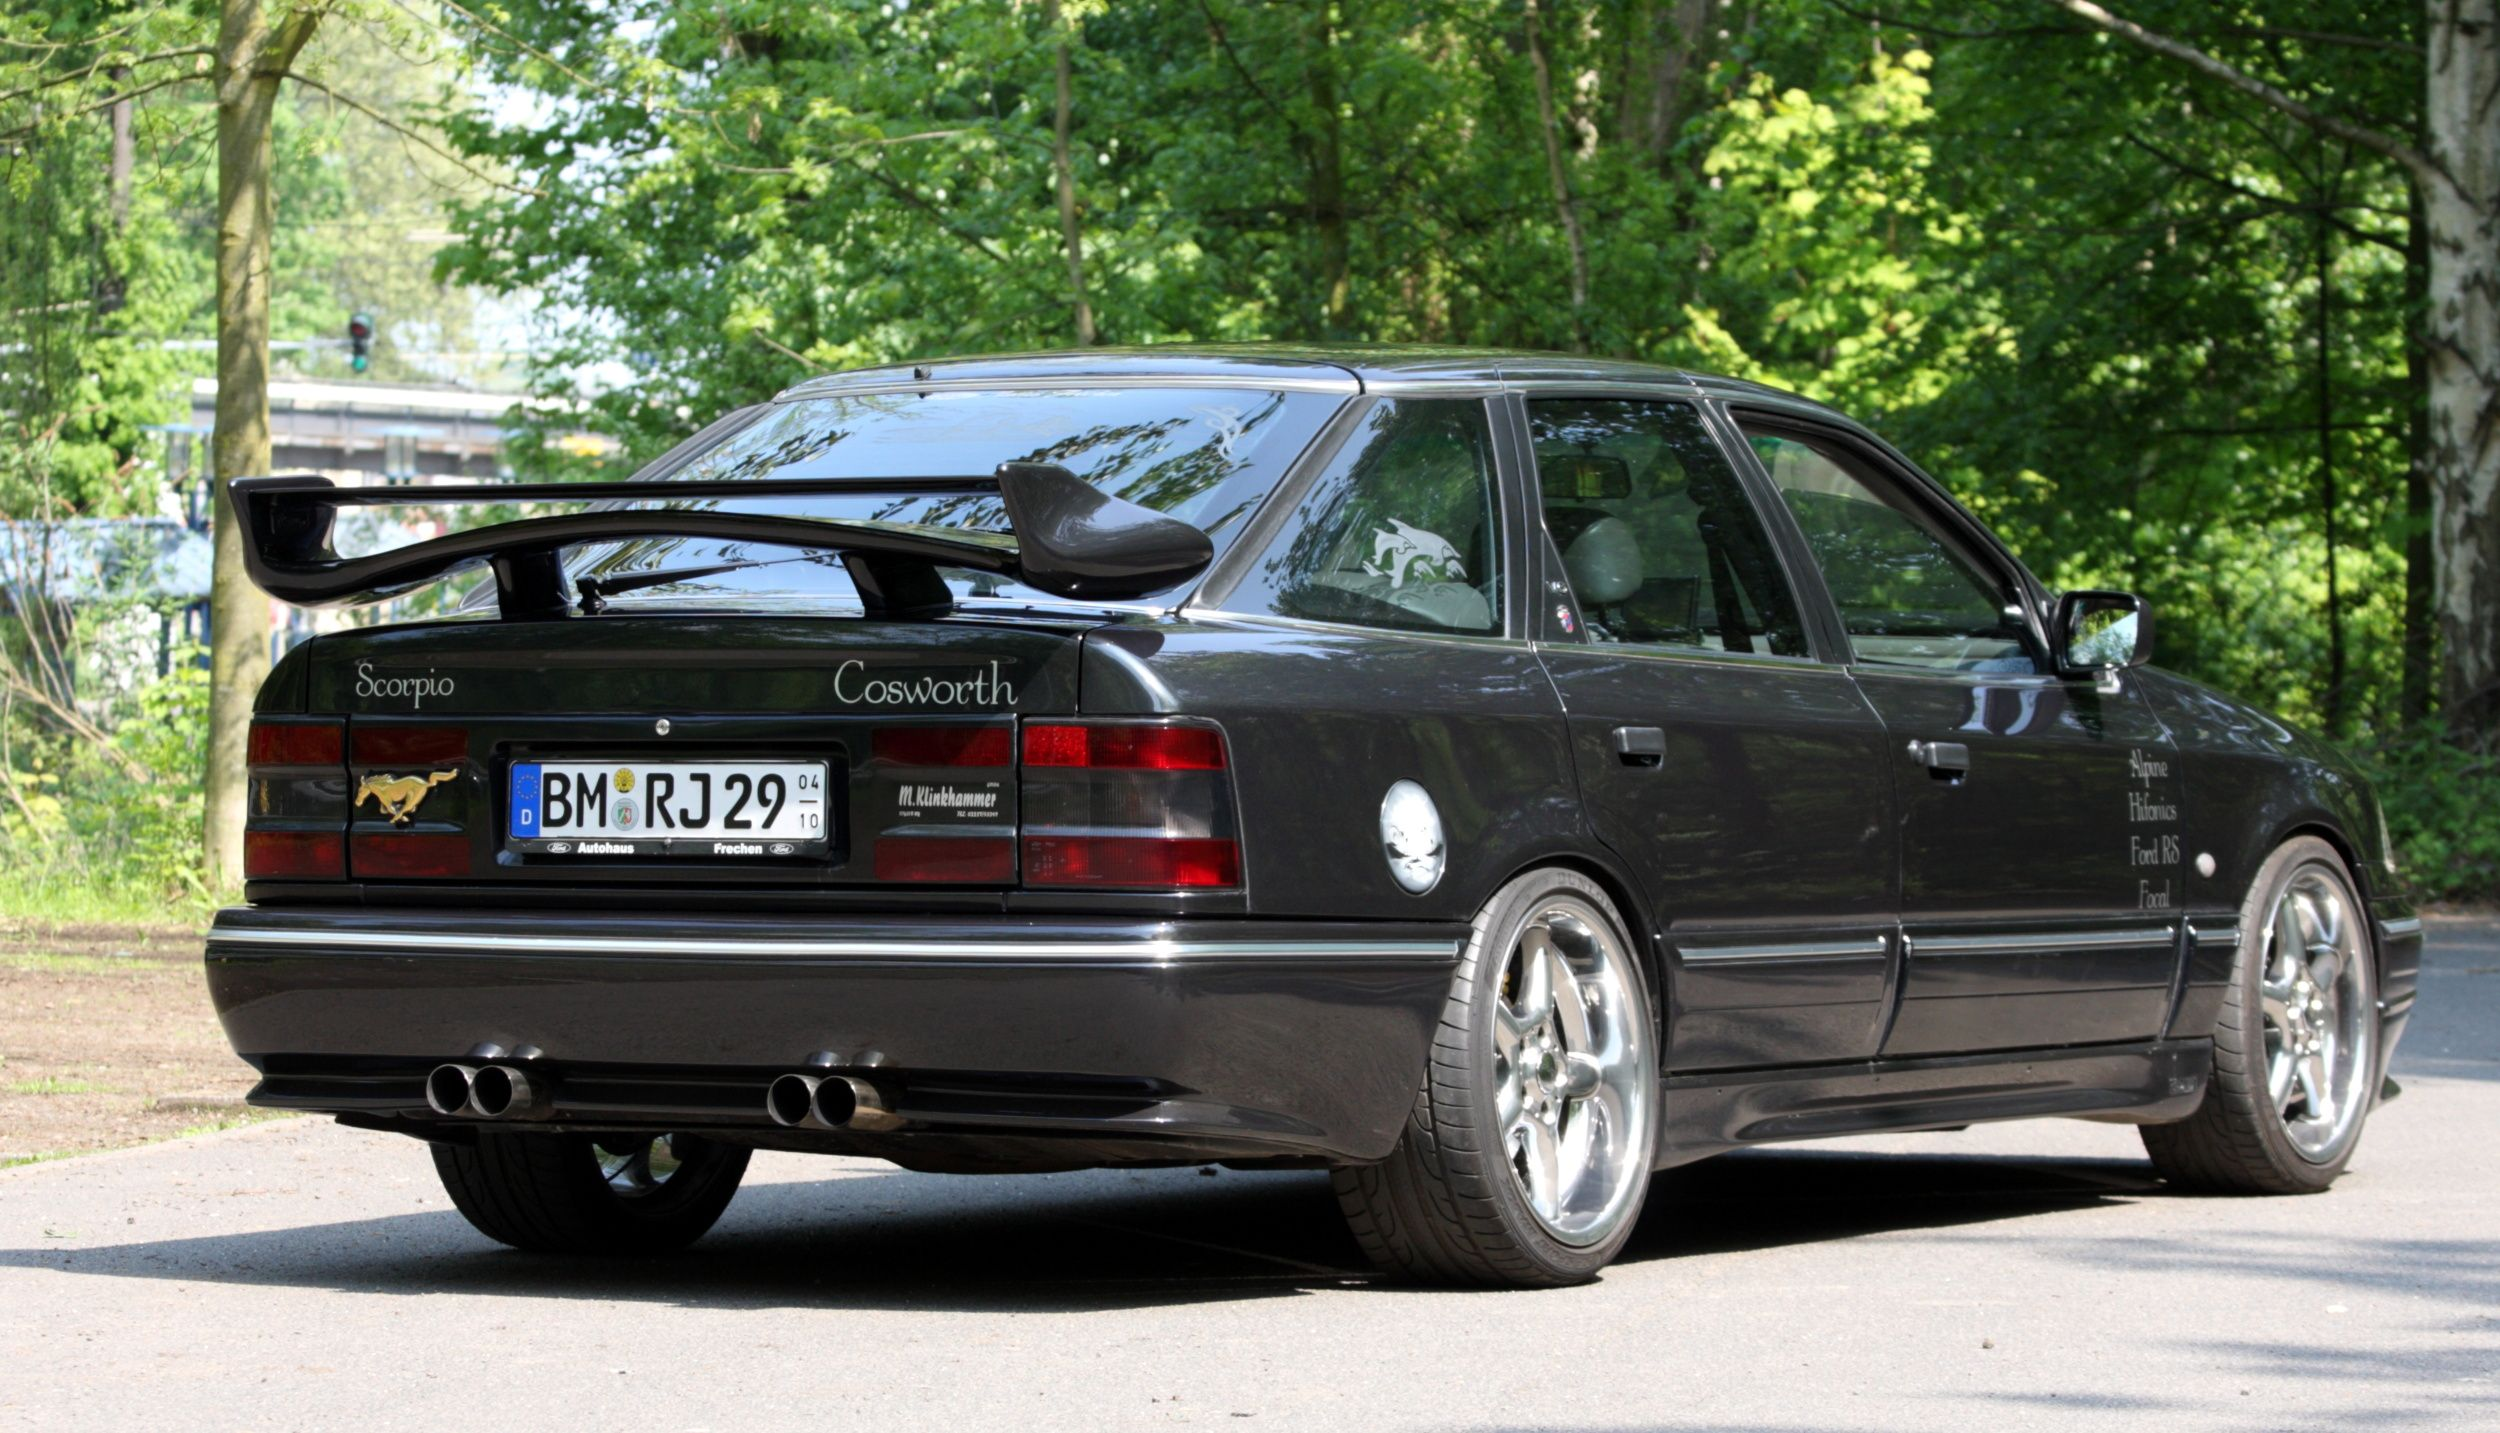 Ford Scorpio Cosworth